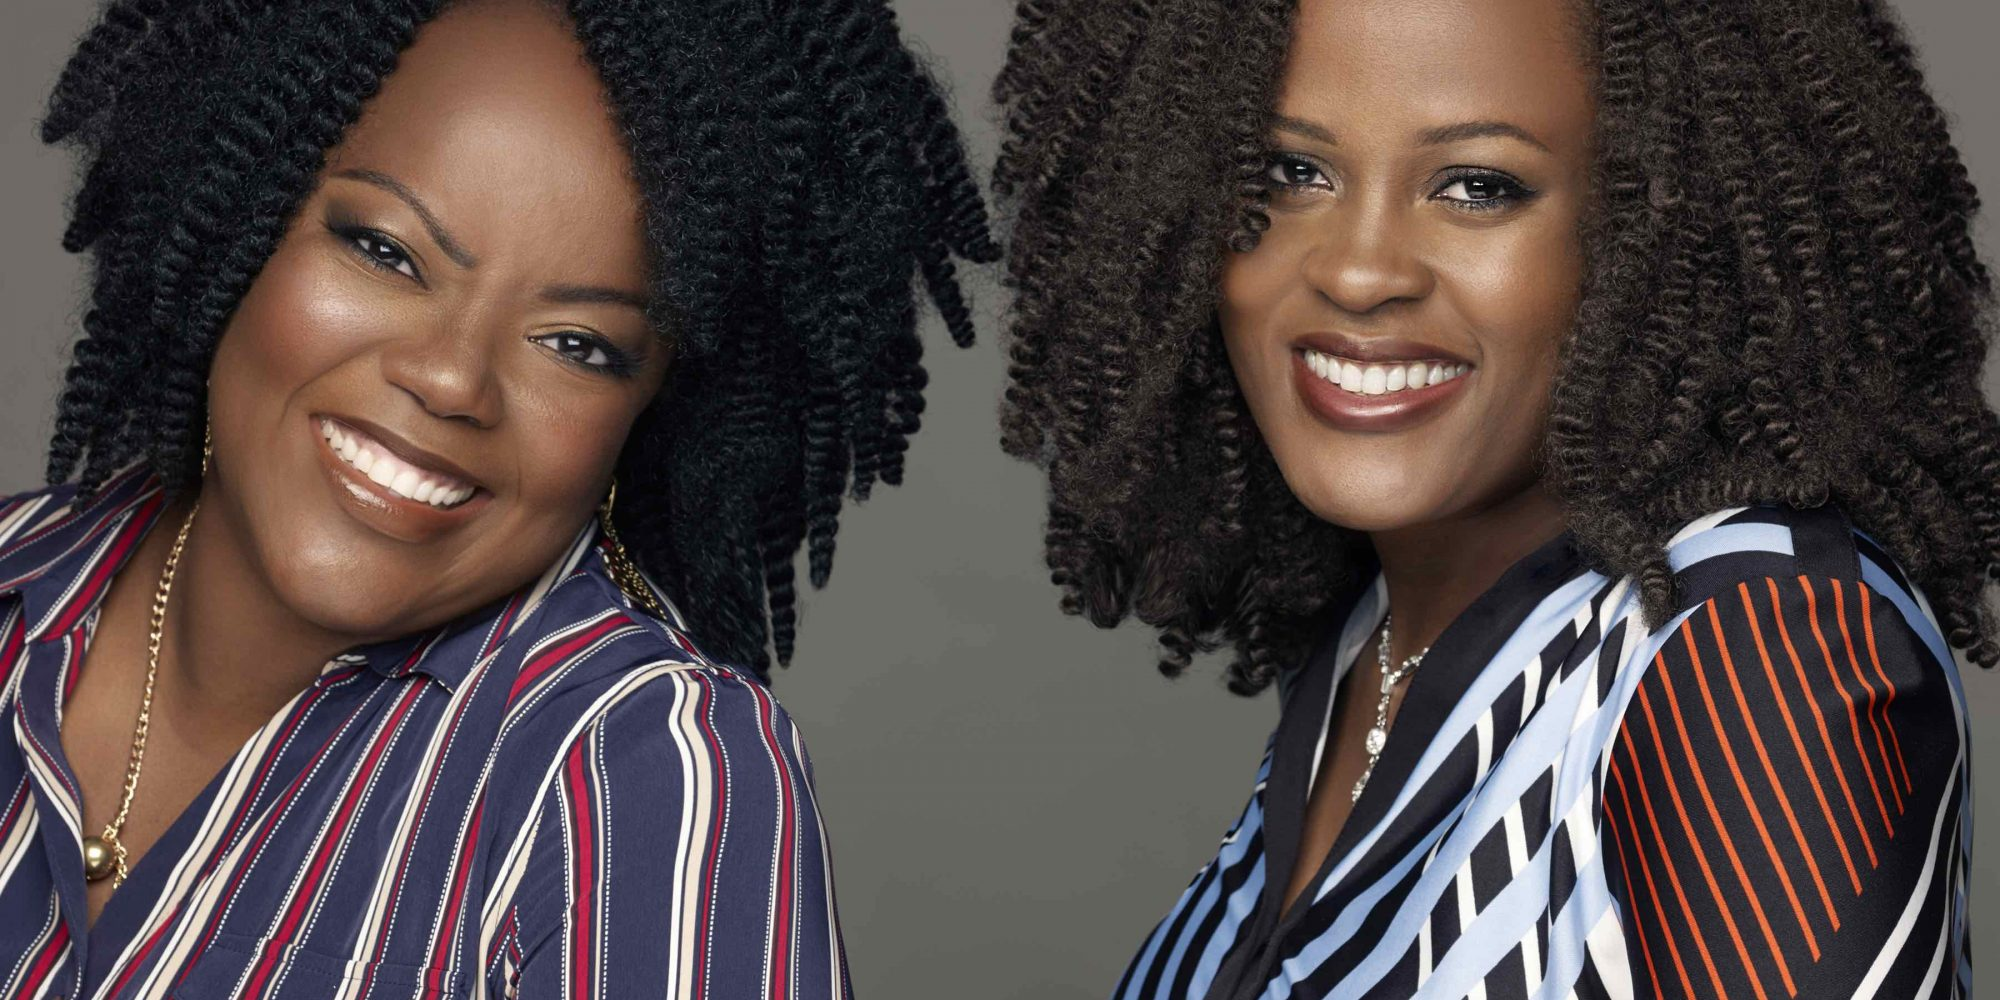 Bolden Enters Target As Part Of A Push Into Multicultural Skincare